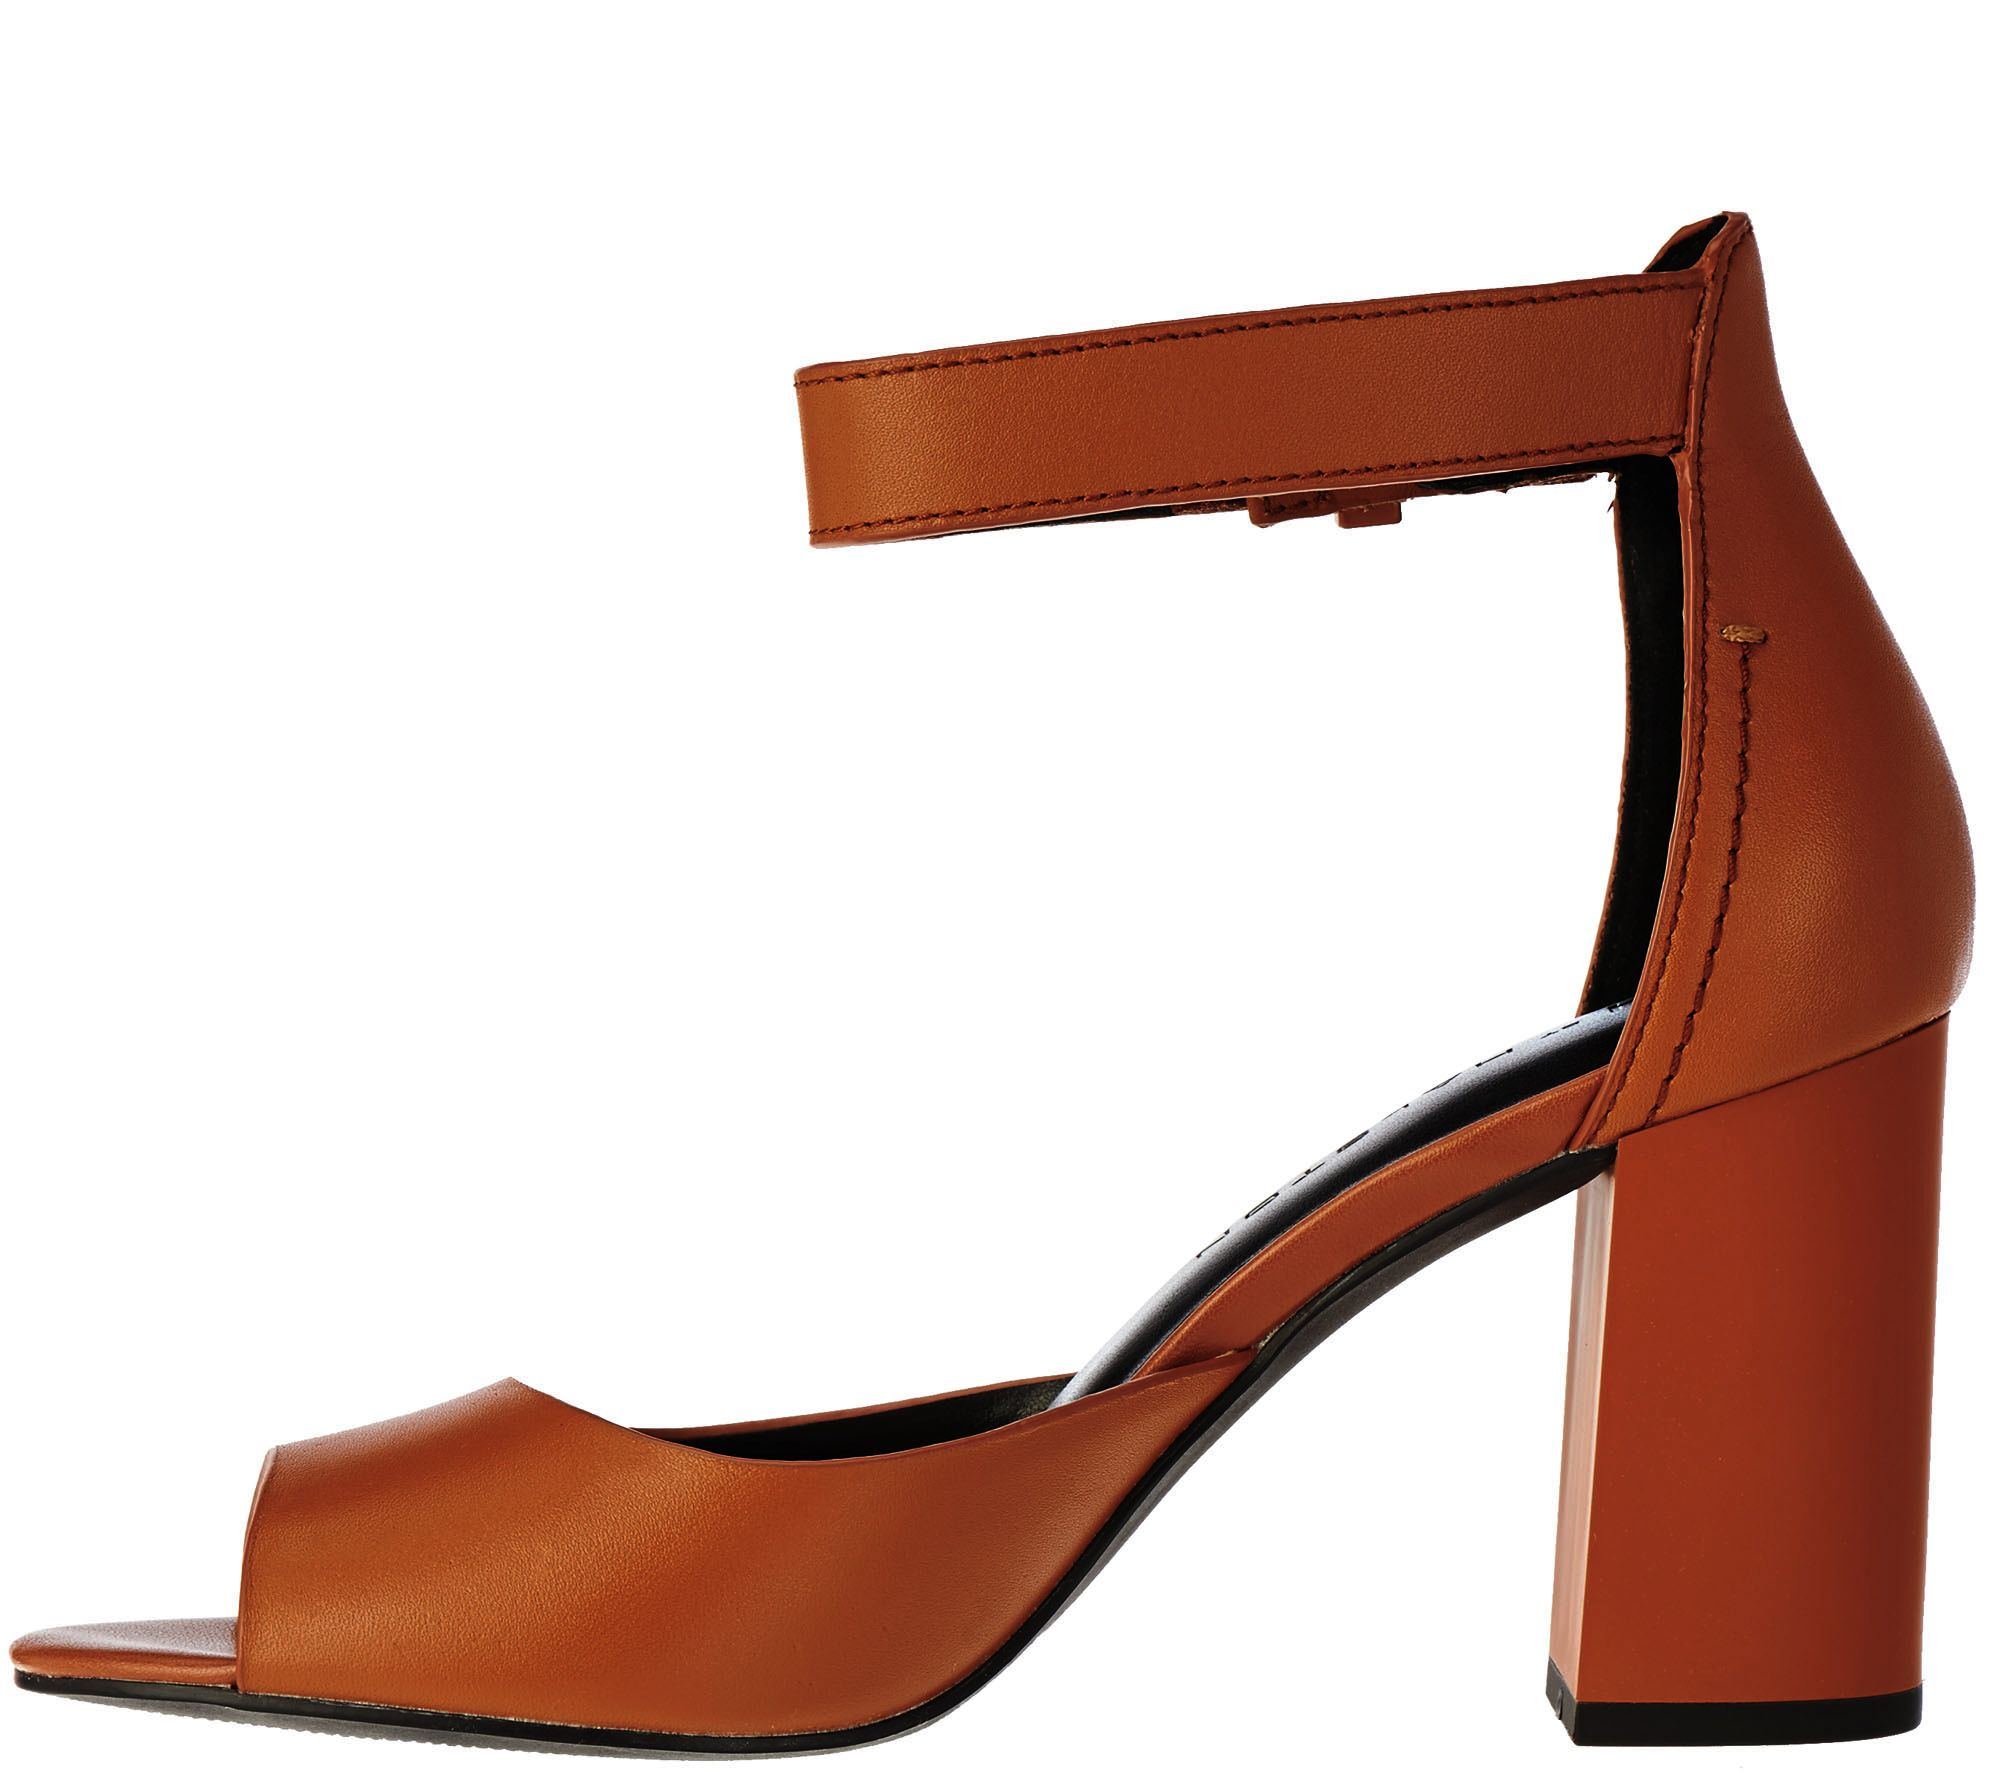 979fca0ce7fa H by Halston Leather Block Heels with Adjustable Strap - Carina - Page 1 —  QVC.com